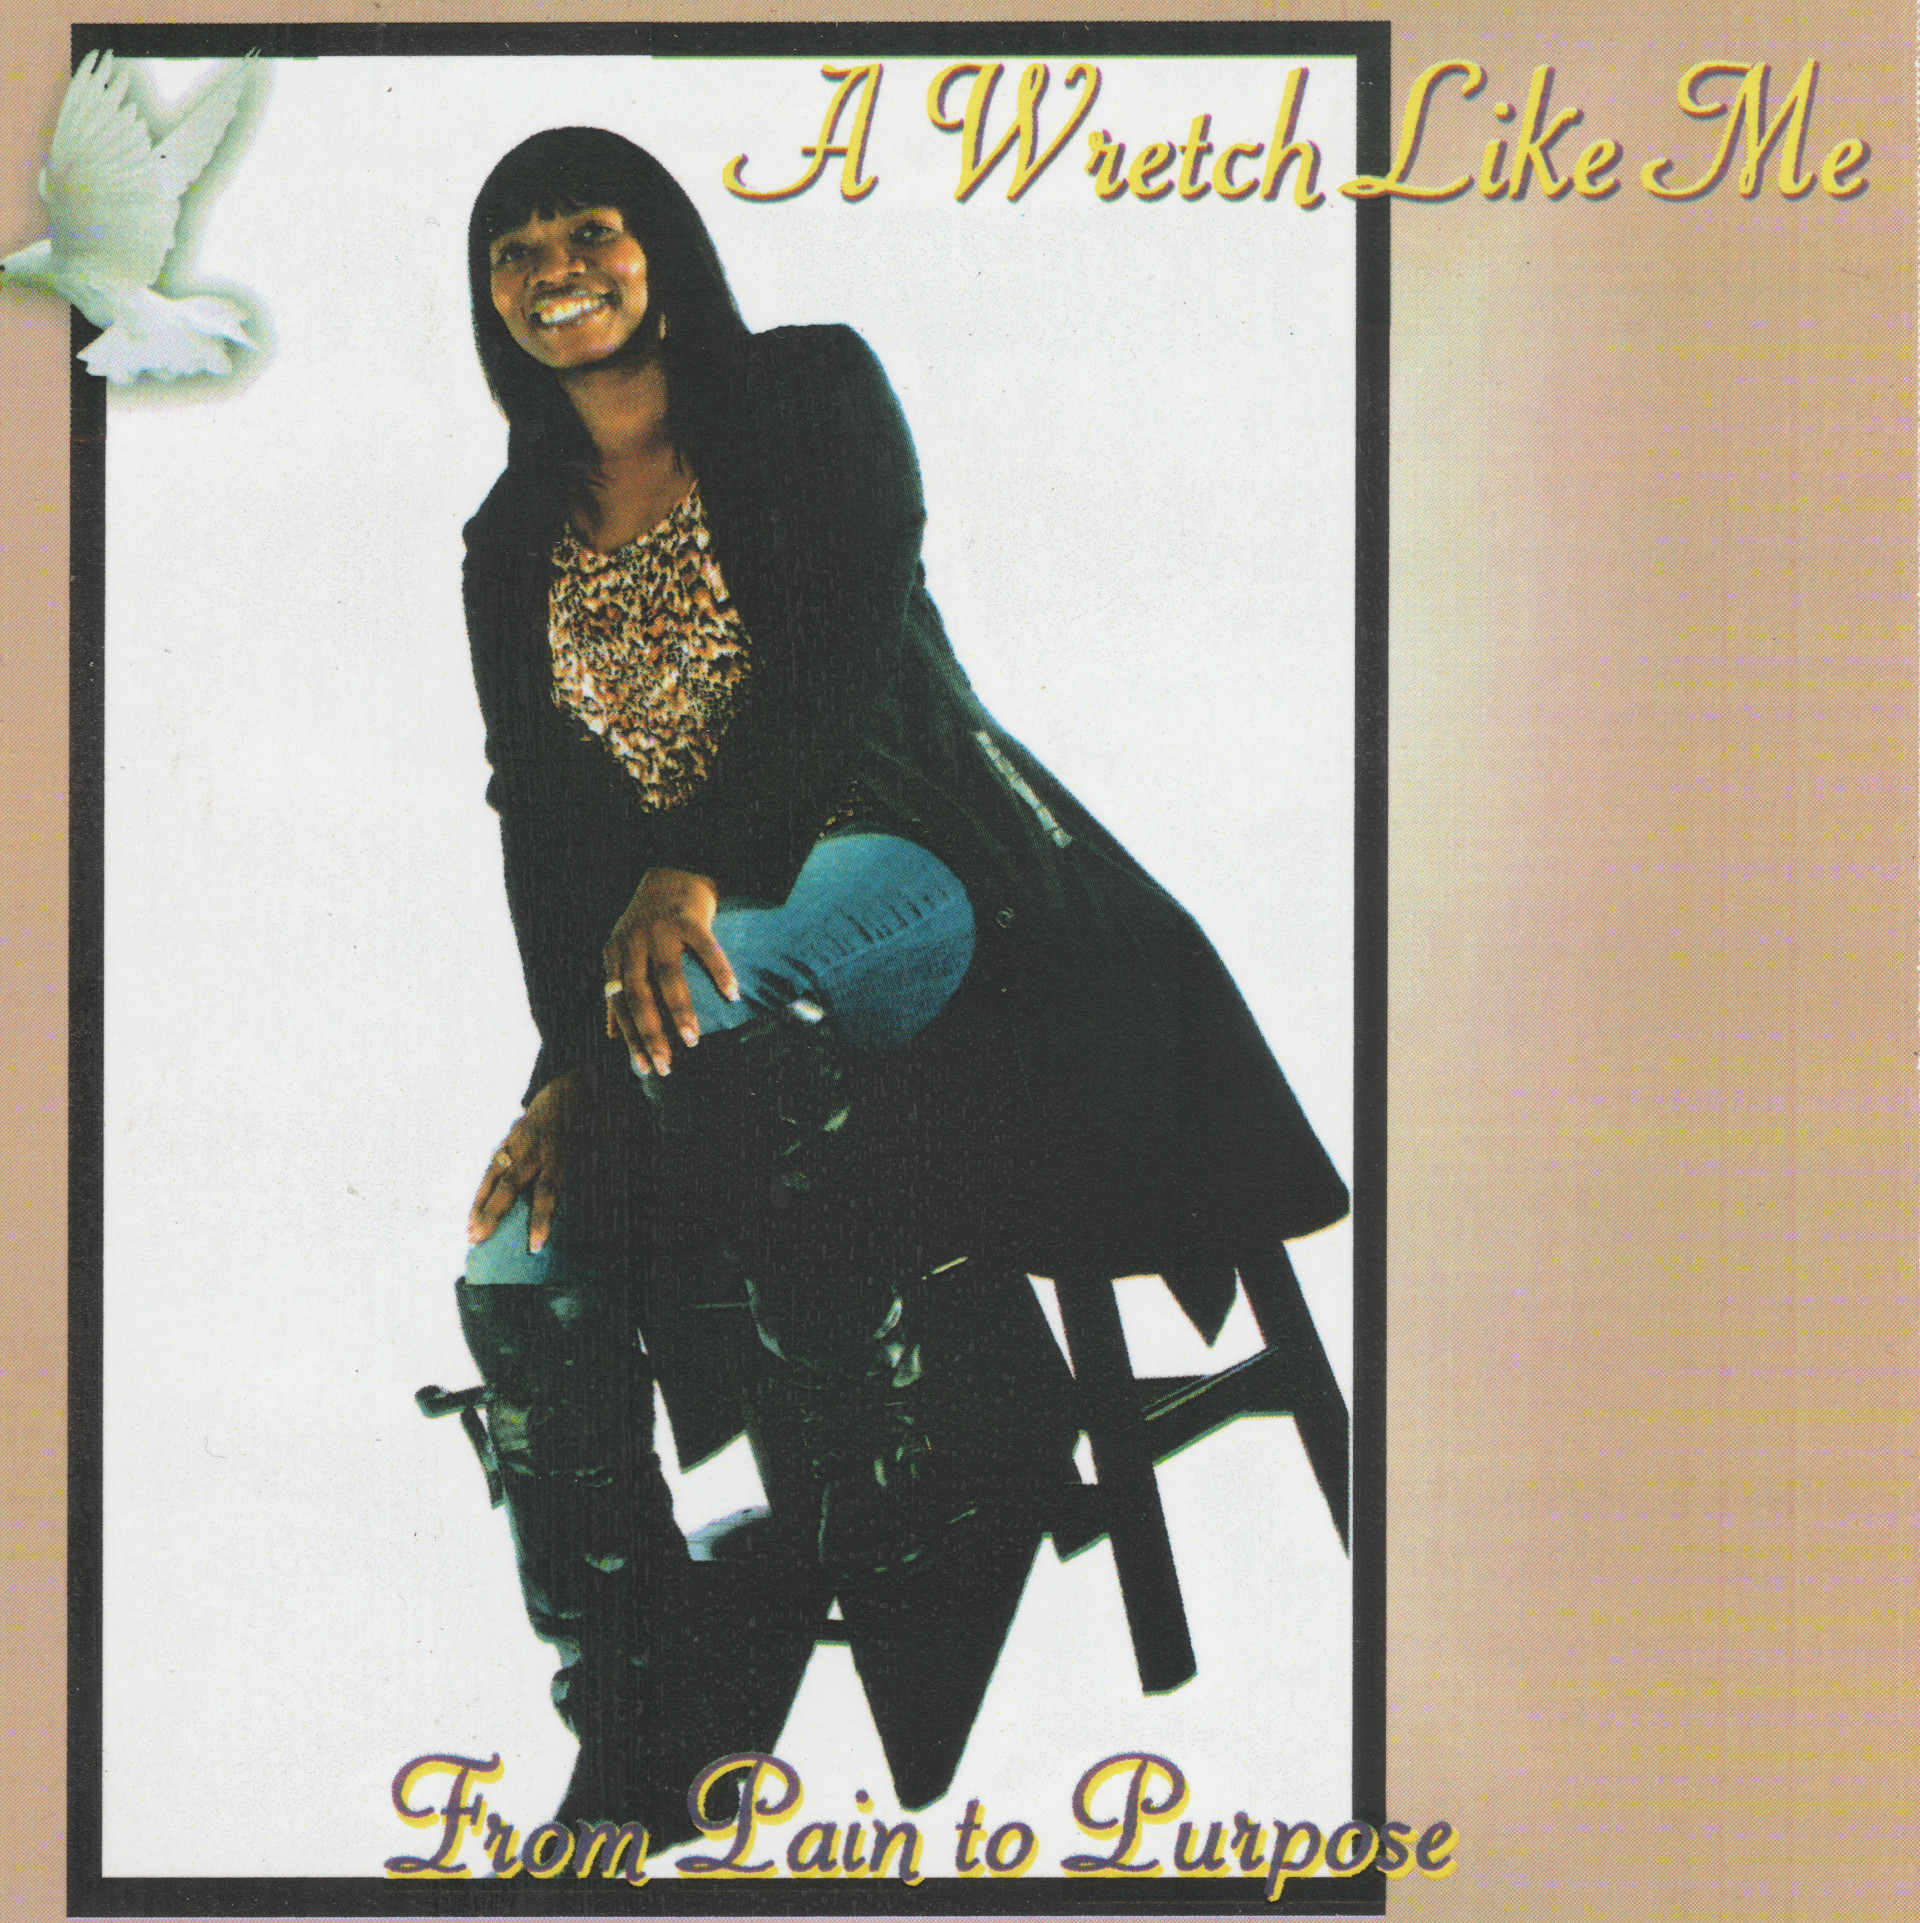 A Wretch Like Me CD Cover Front